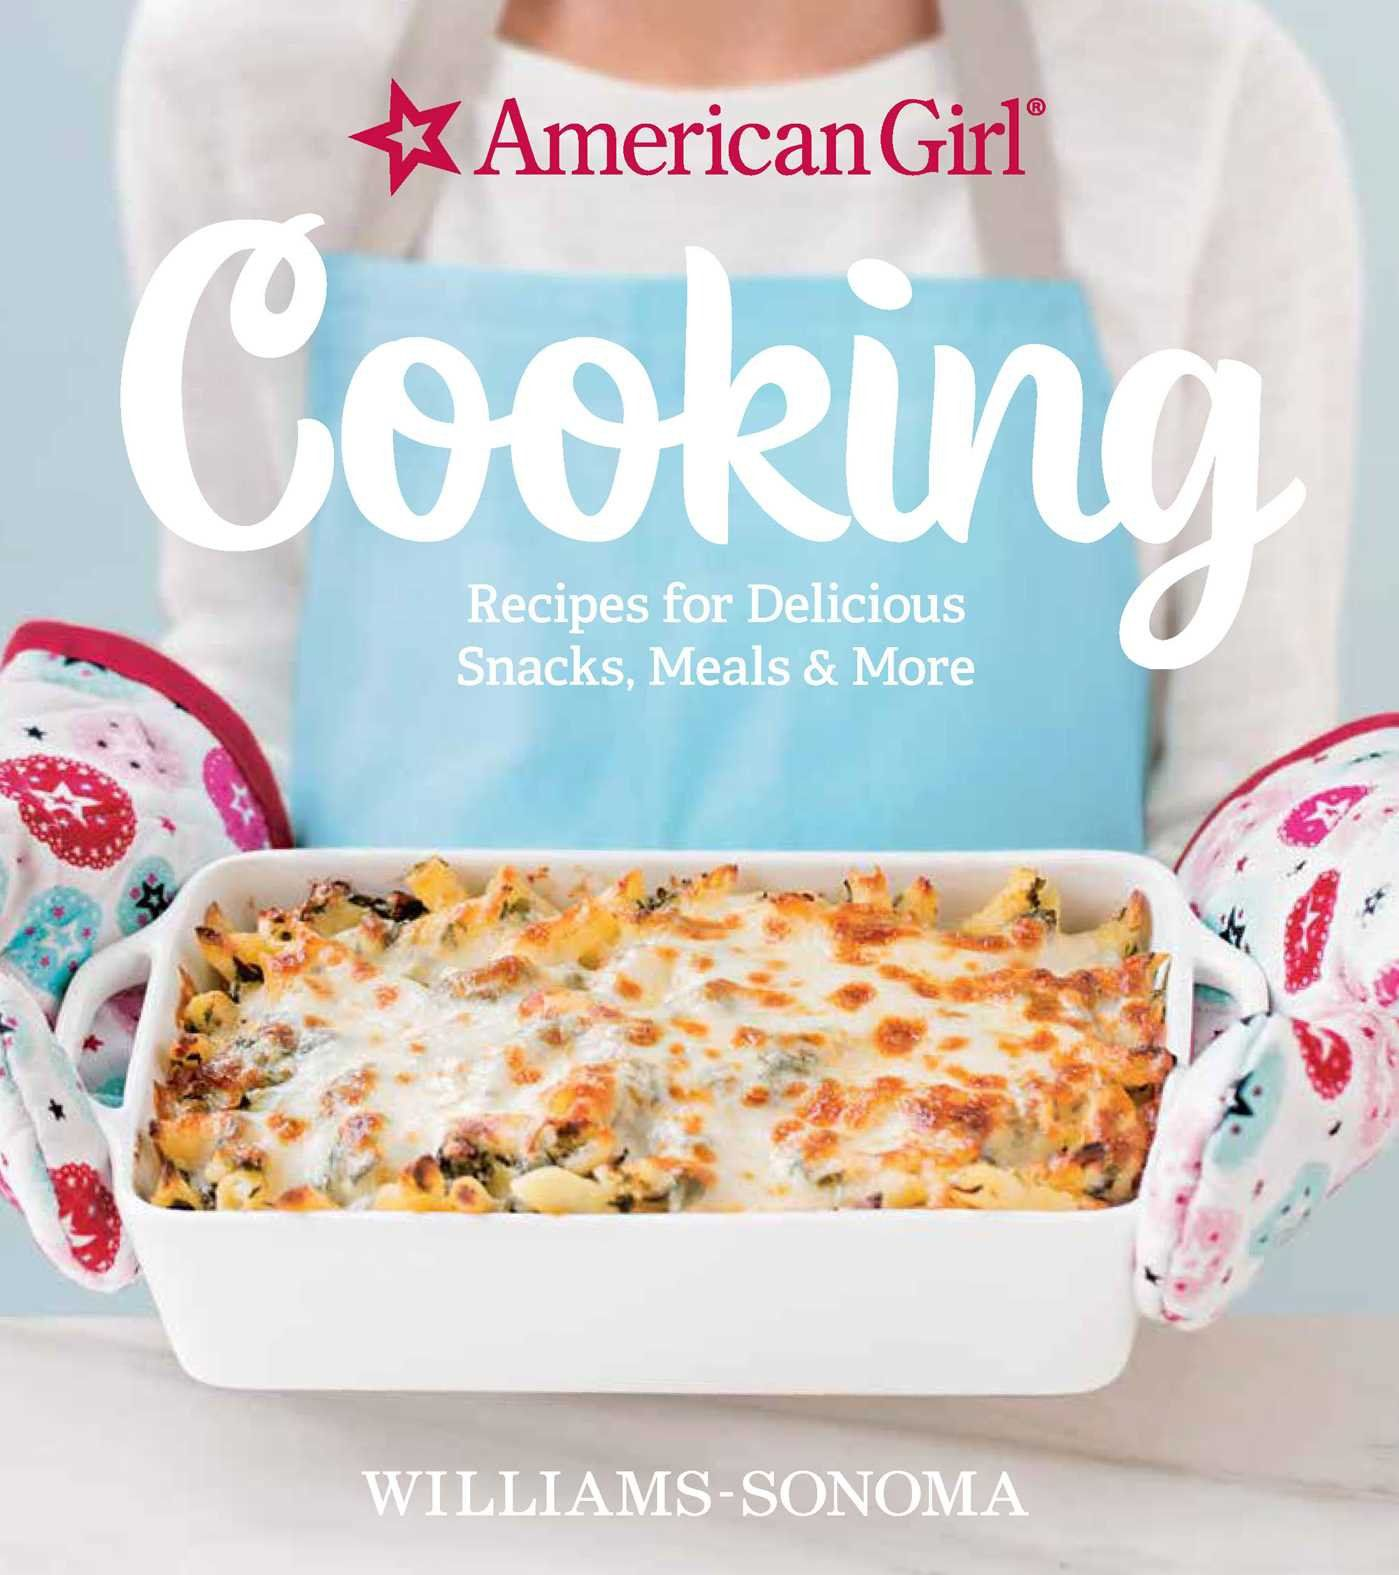 American Girl Cooking—Best Kids' Cookbooks